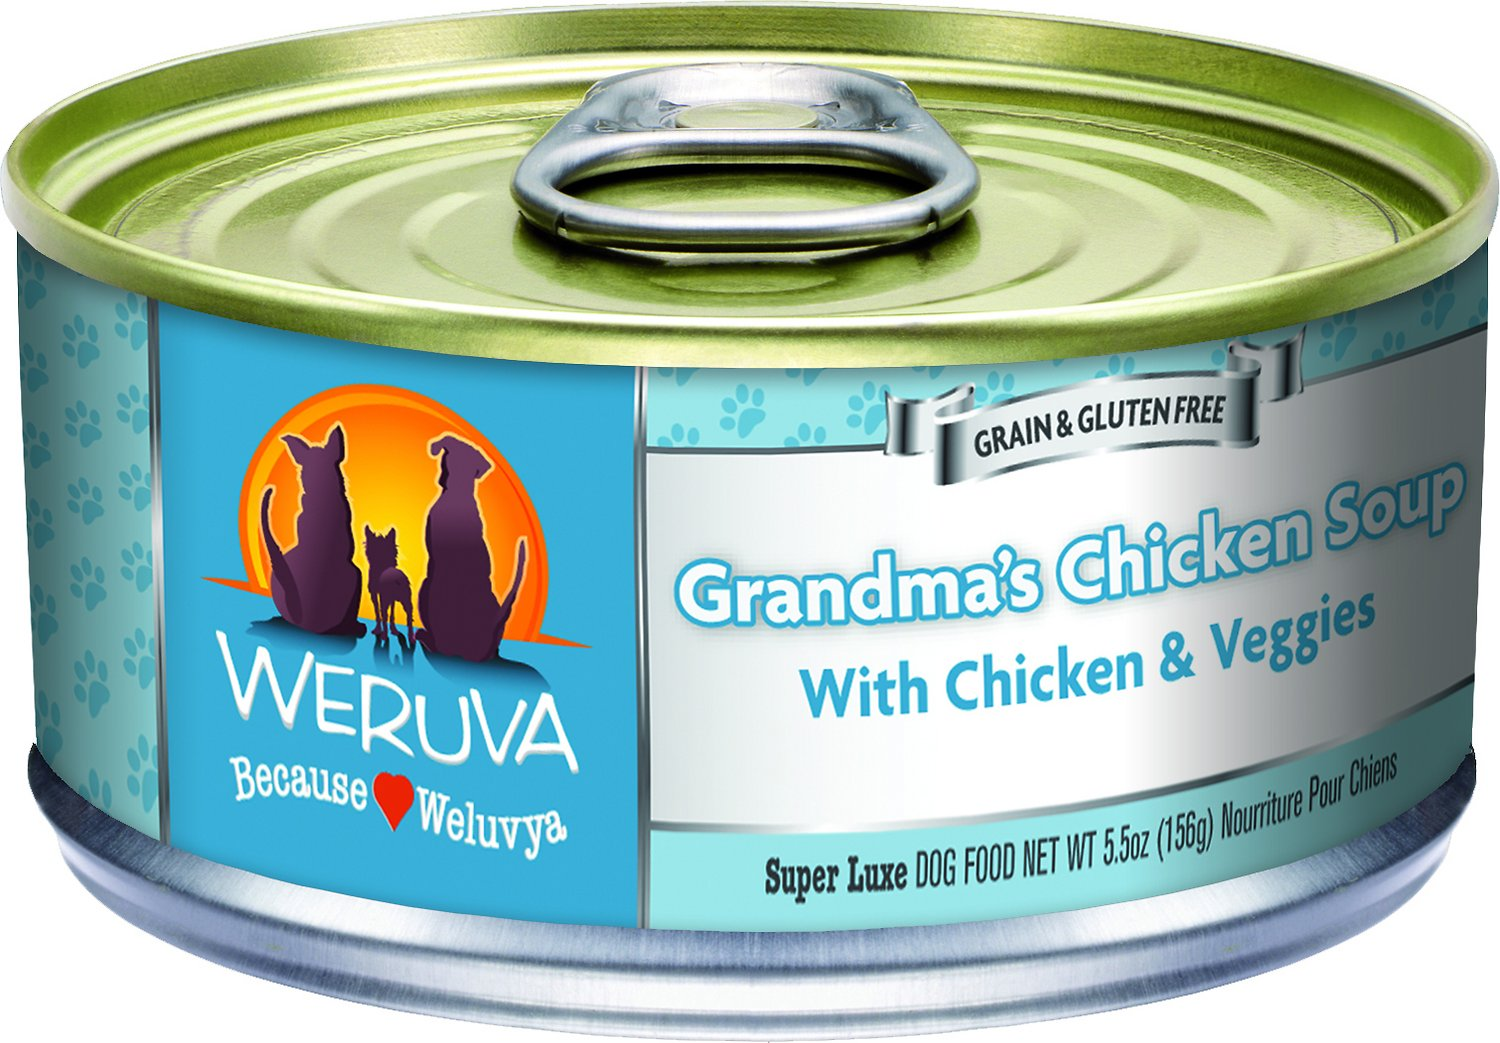 Weruva Dog Classic Grandma's Chicken Soup with Chicken& Veggies Grain-Free Wet Dog Food, 5.5-oz